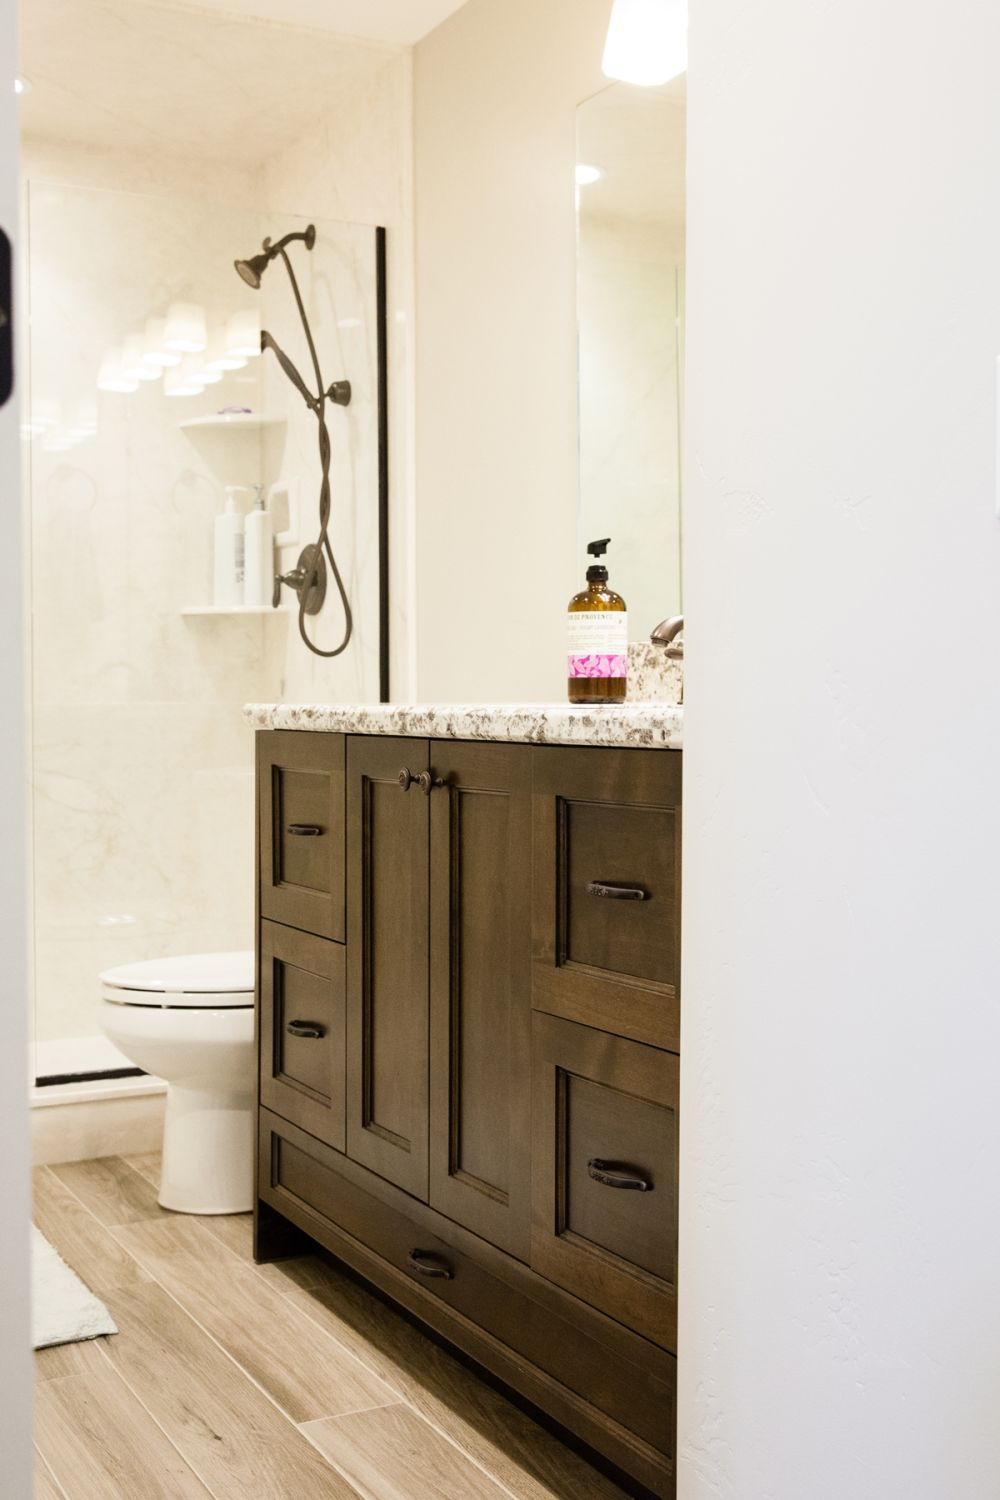 How To Decorate Bathroom how to decorate a bathroom without clutter